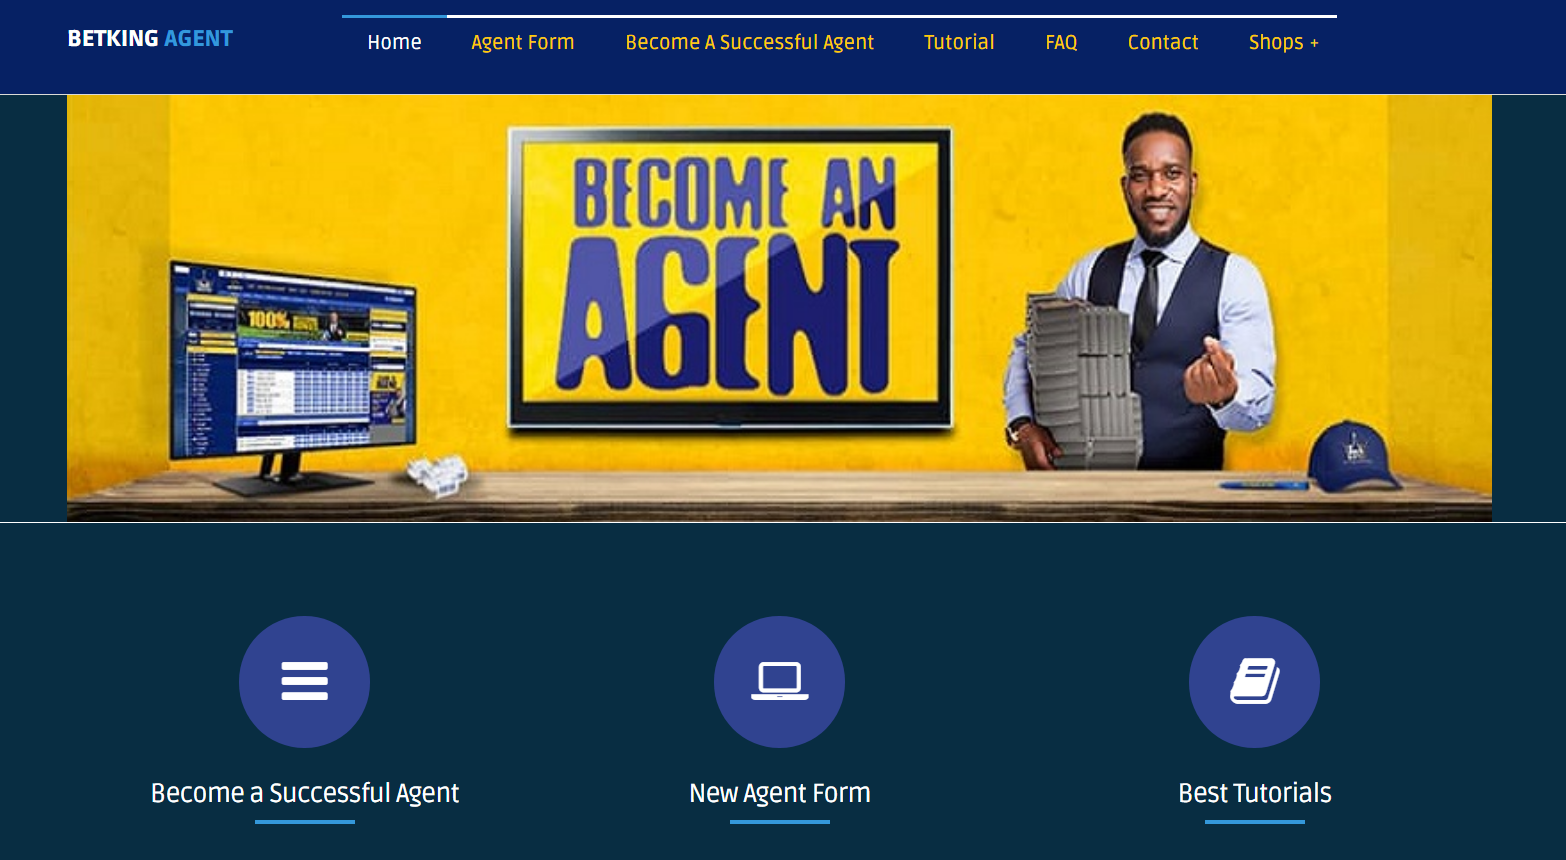 BetKing Agent